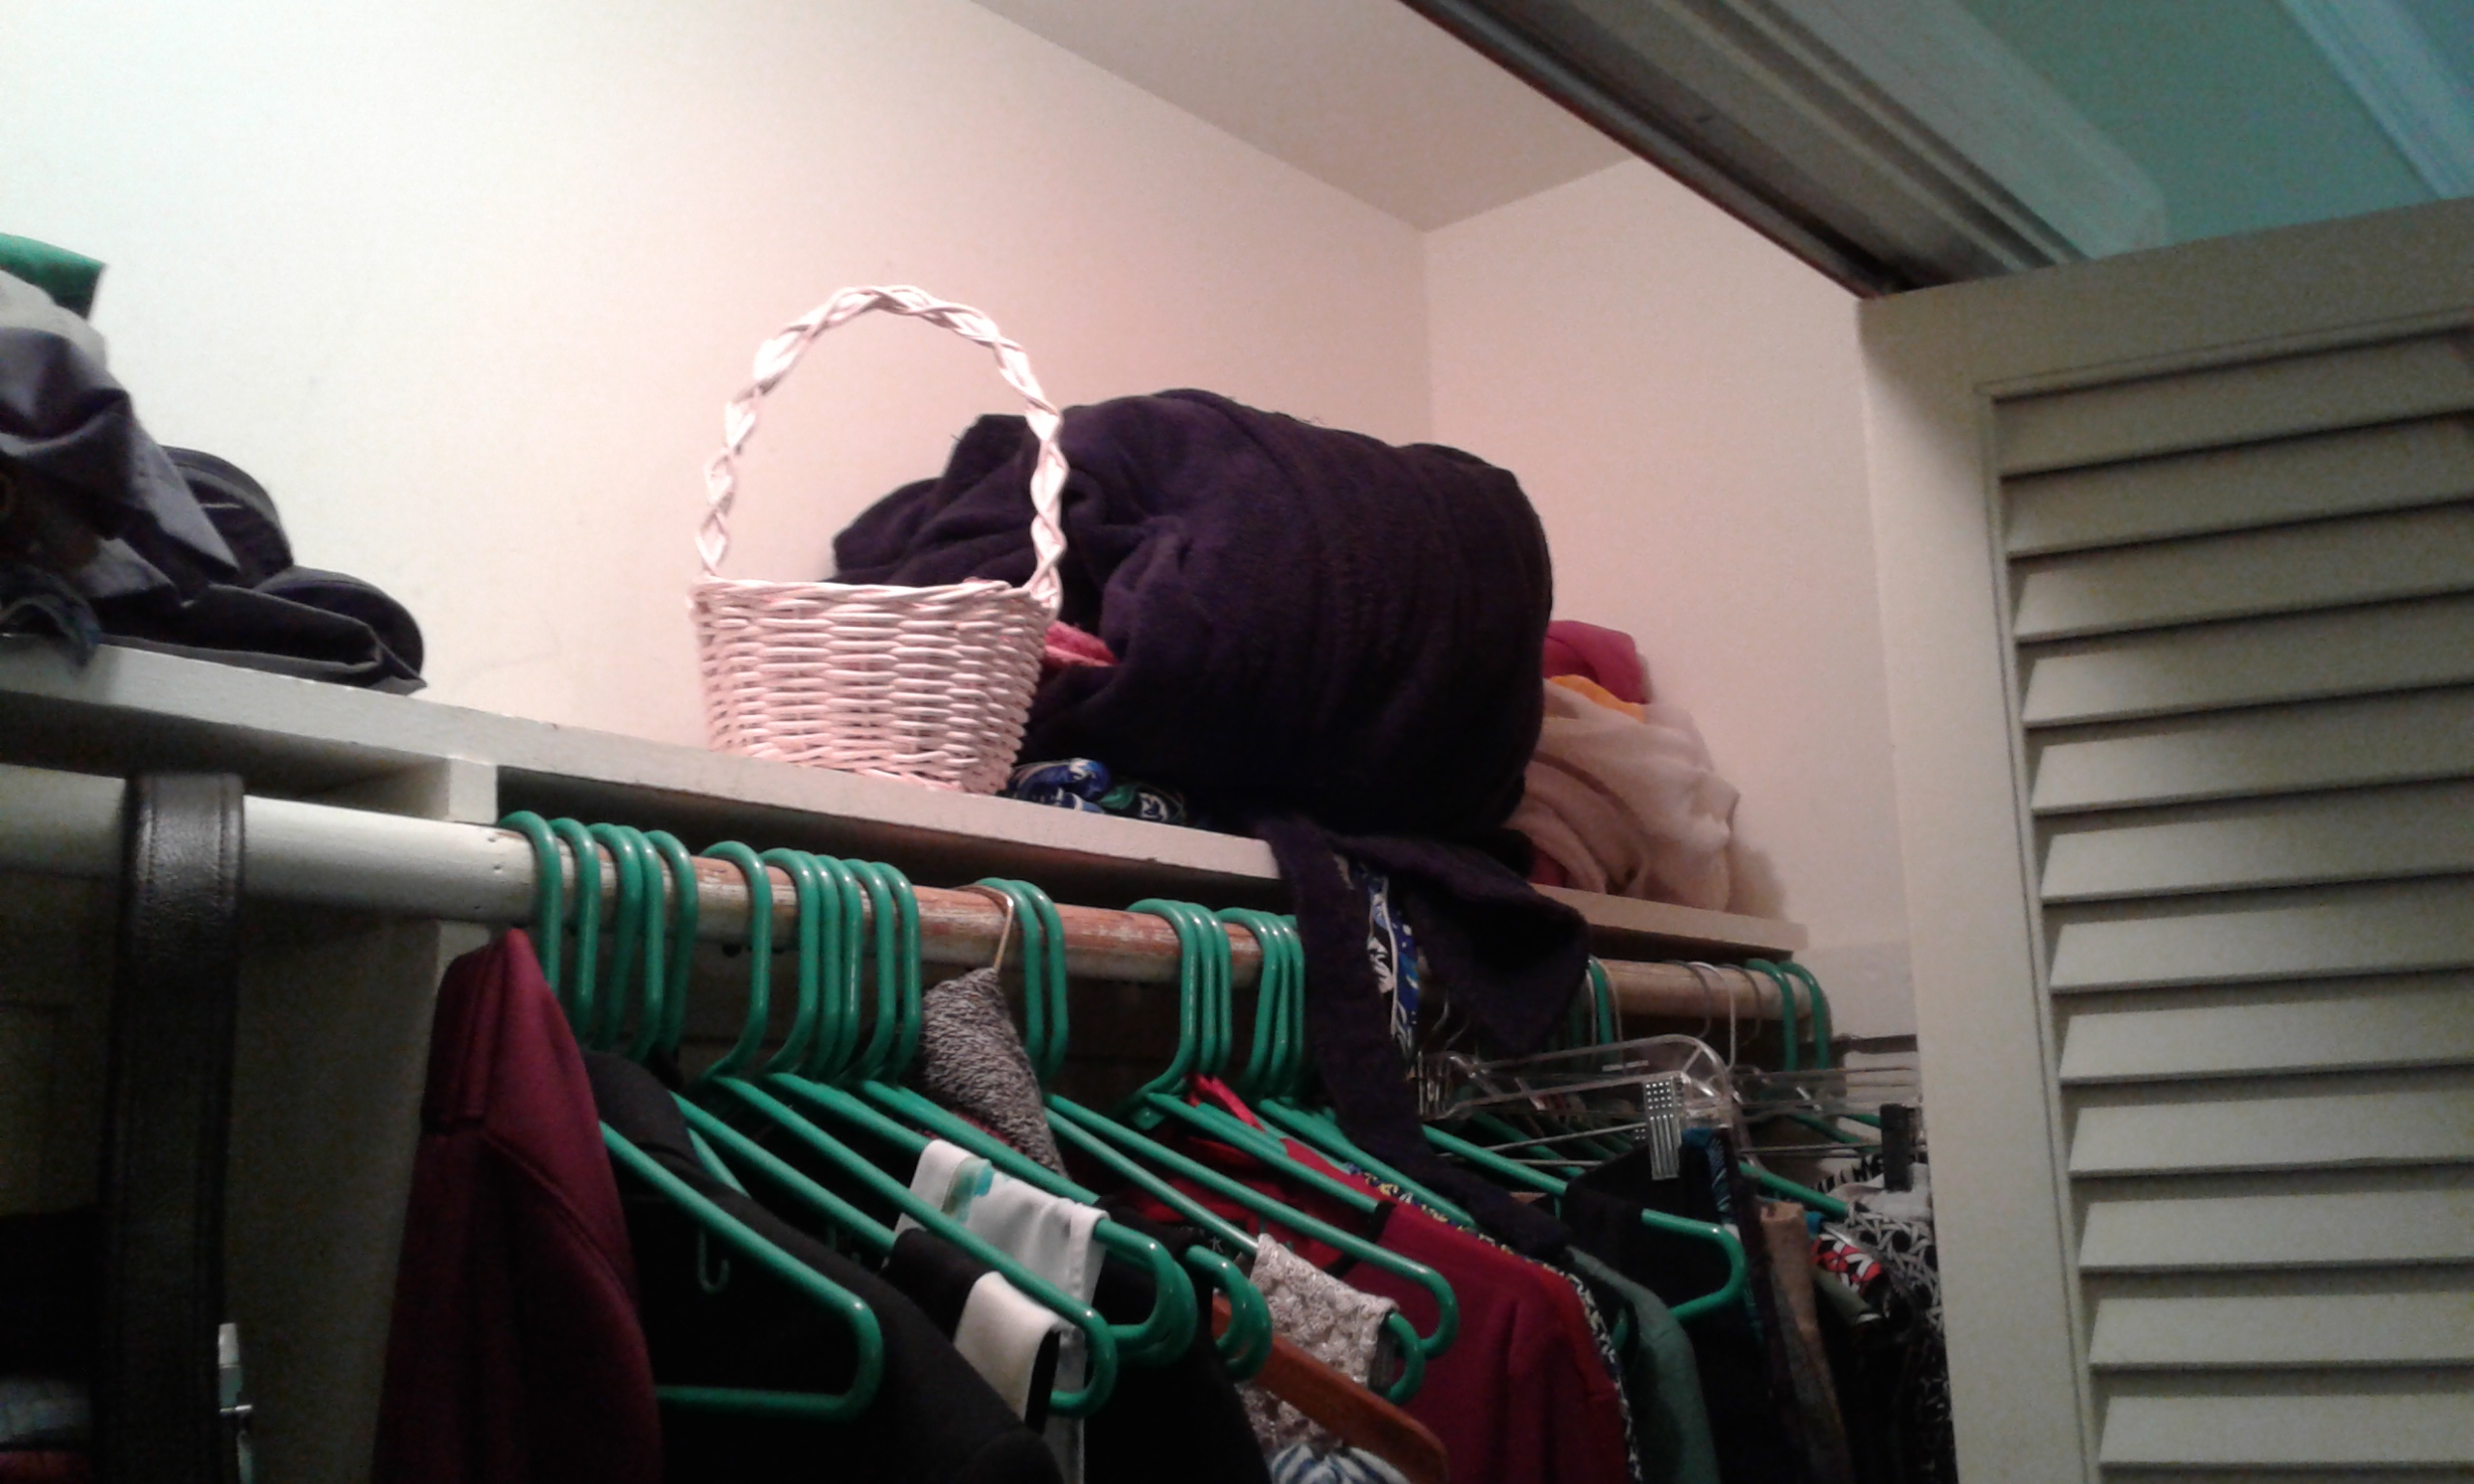 A closet shelf, before we cleared its clutter